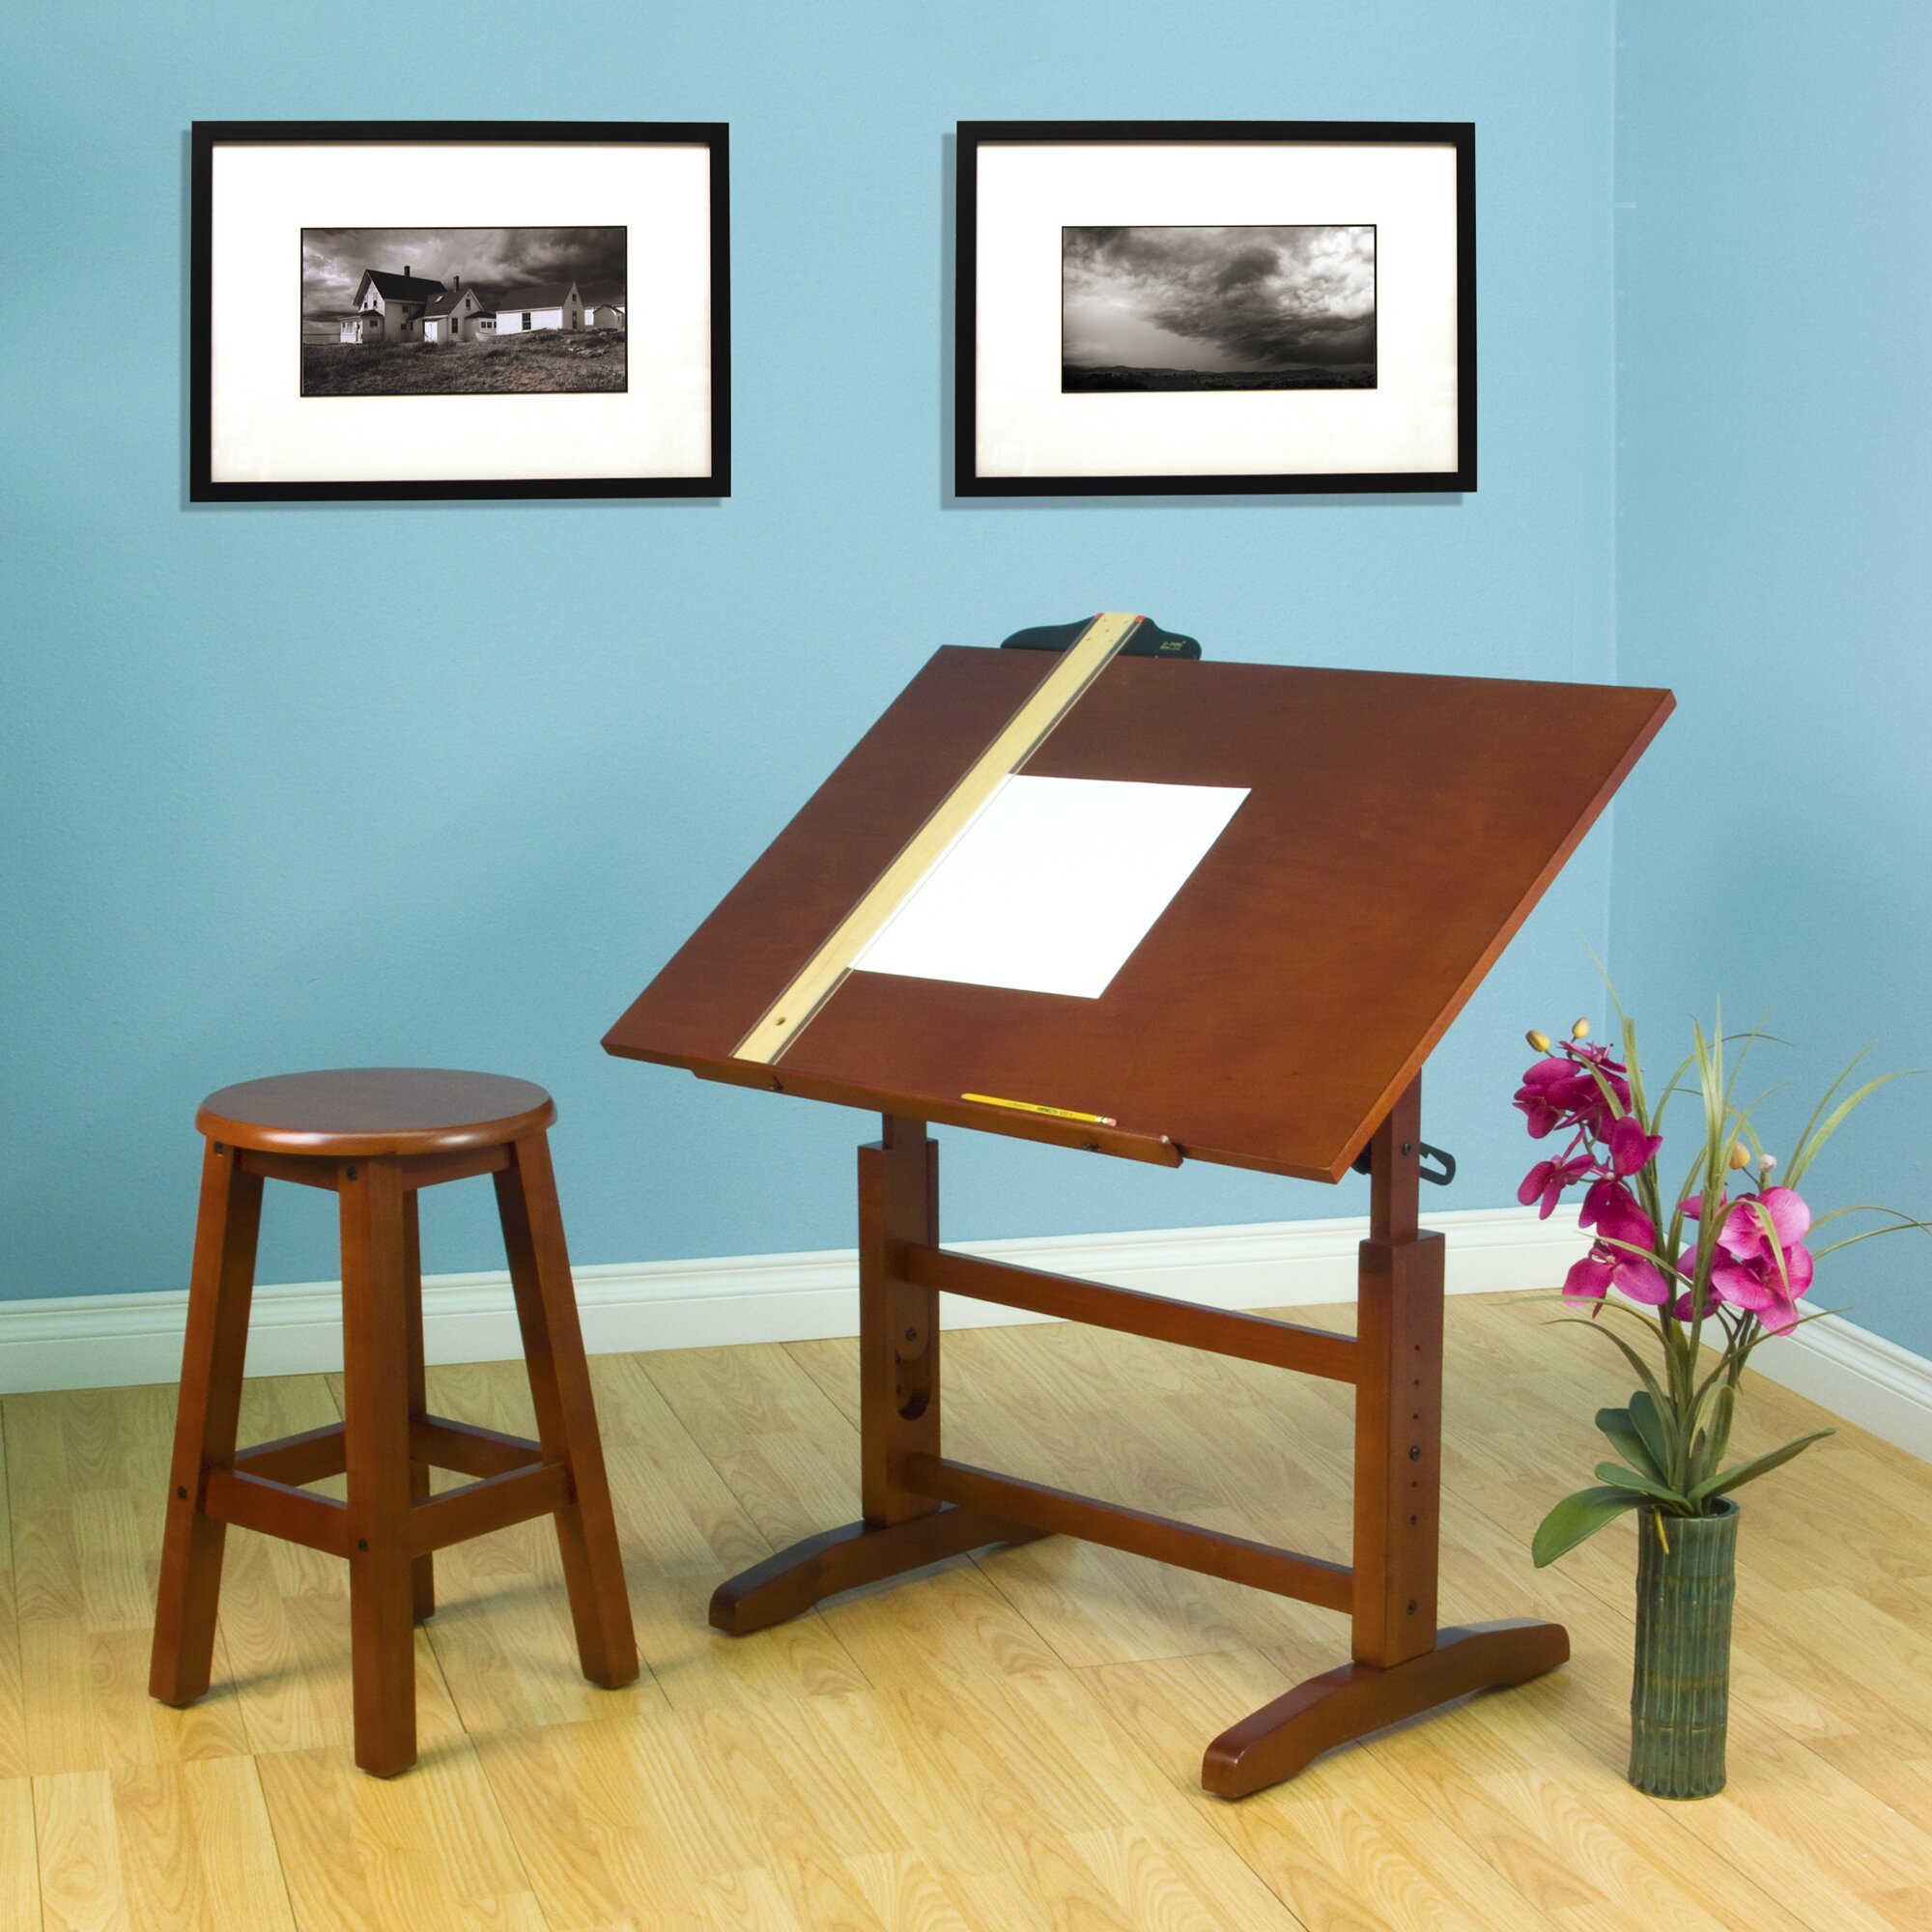 Creative Hardwood 36 Quot W X 24 Quot D Drafting Table And Stool Set